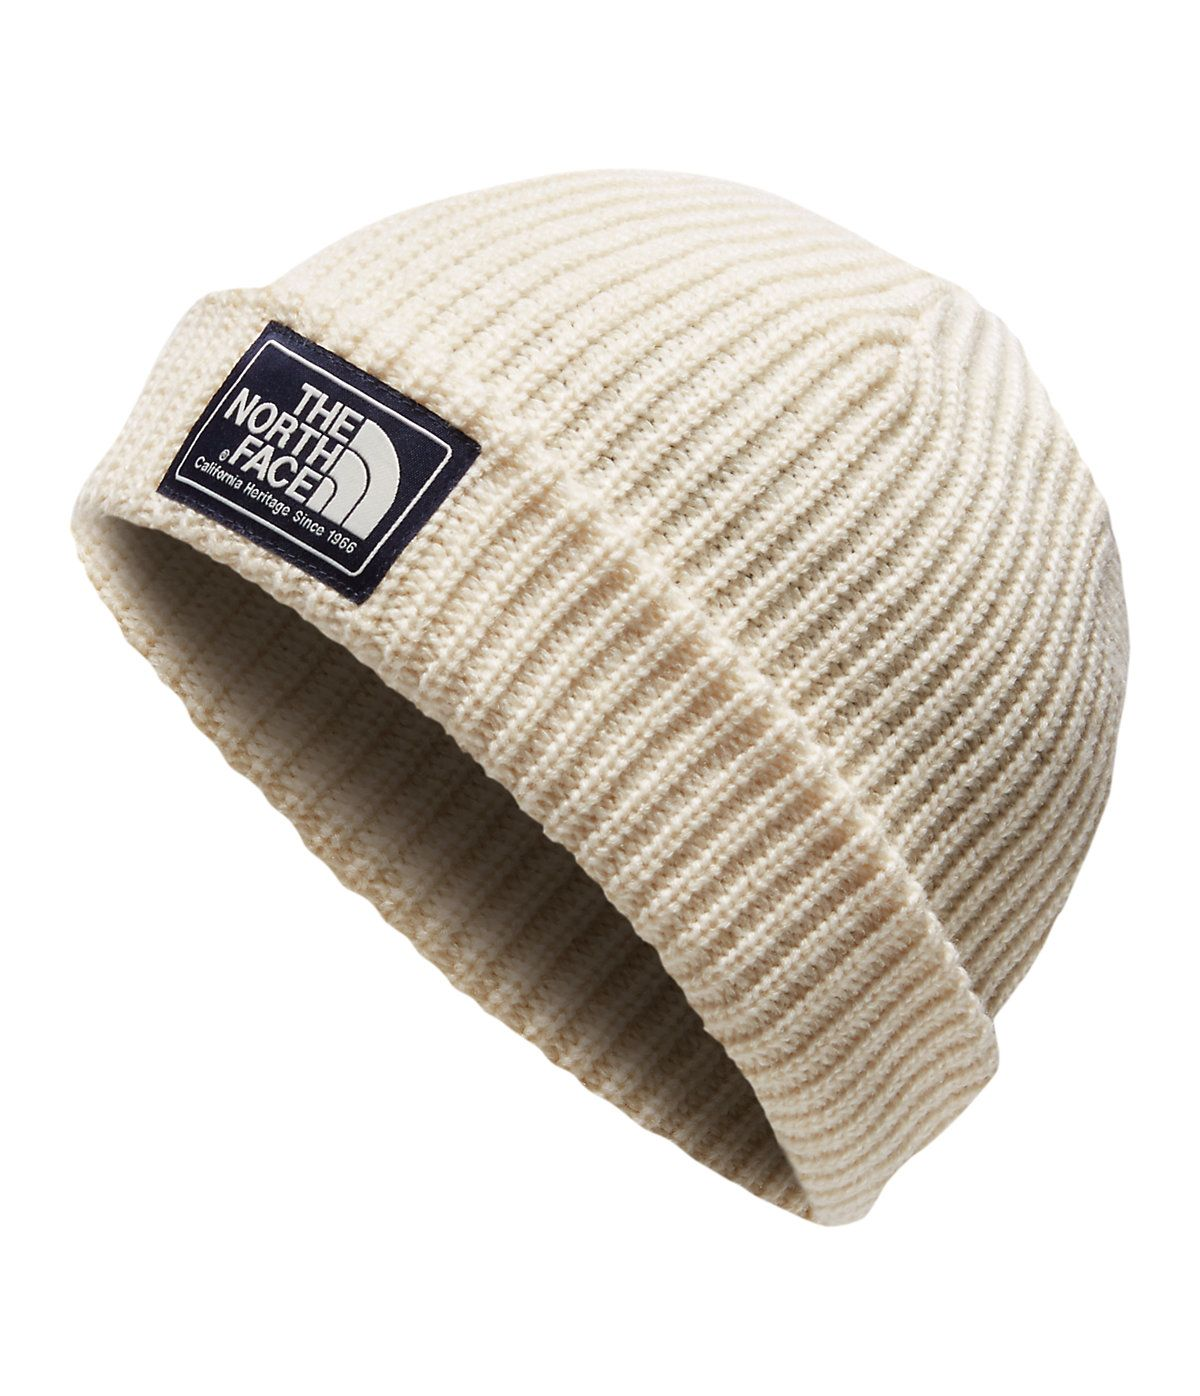 buy online be119 b96d2 Salty Dog Beanie   United States